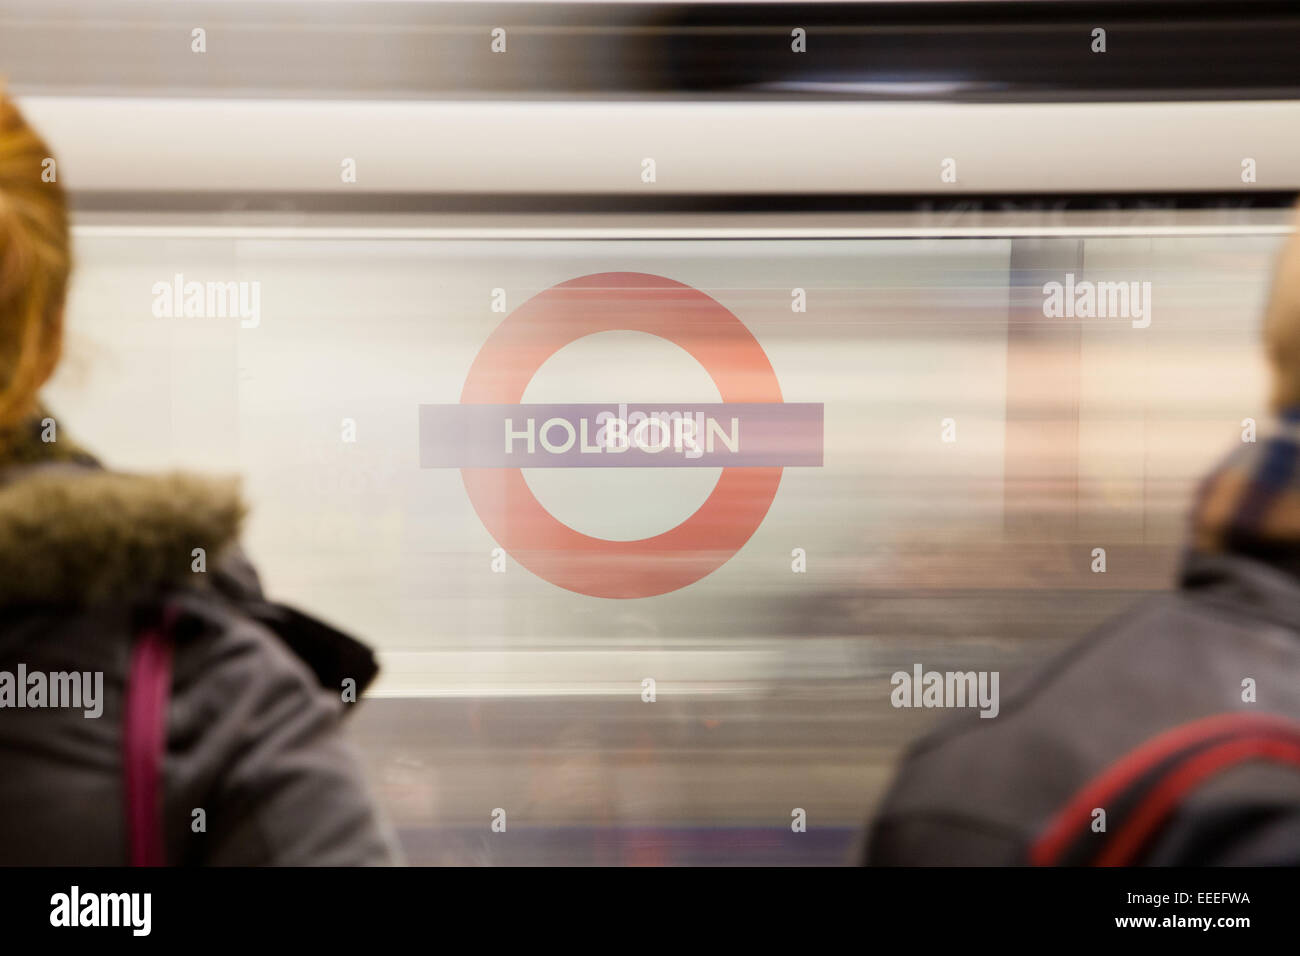 Holborn abstract tube roundel - Stock Image